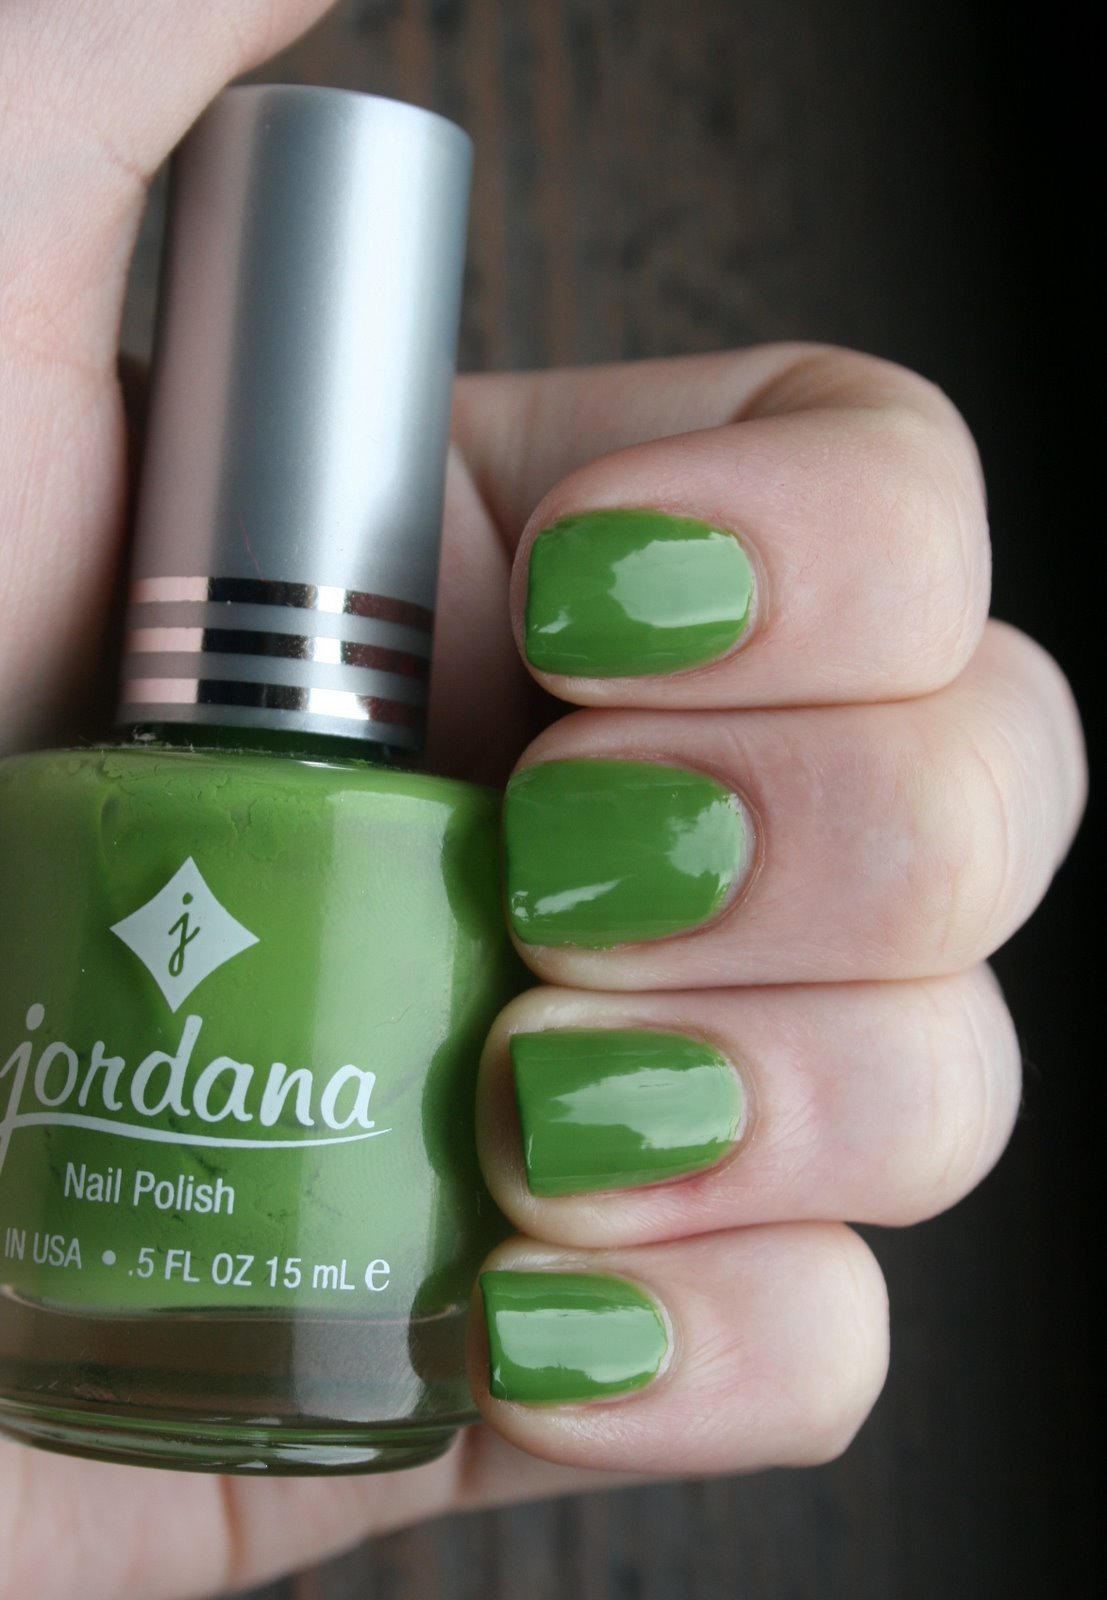 Jordana Rich Green Swatch